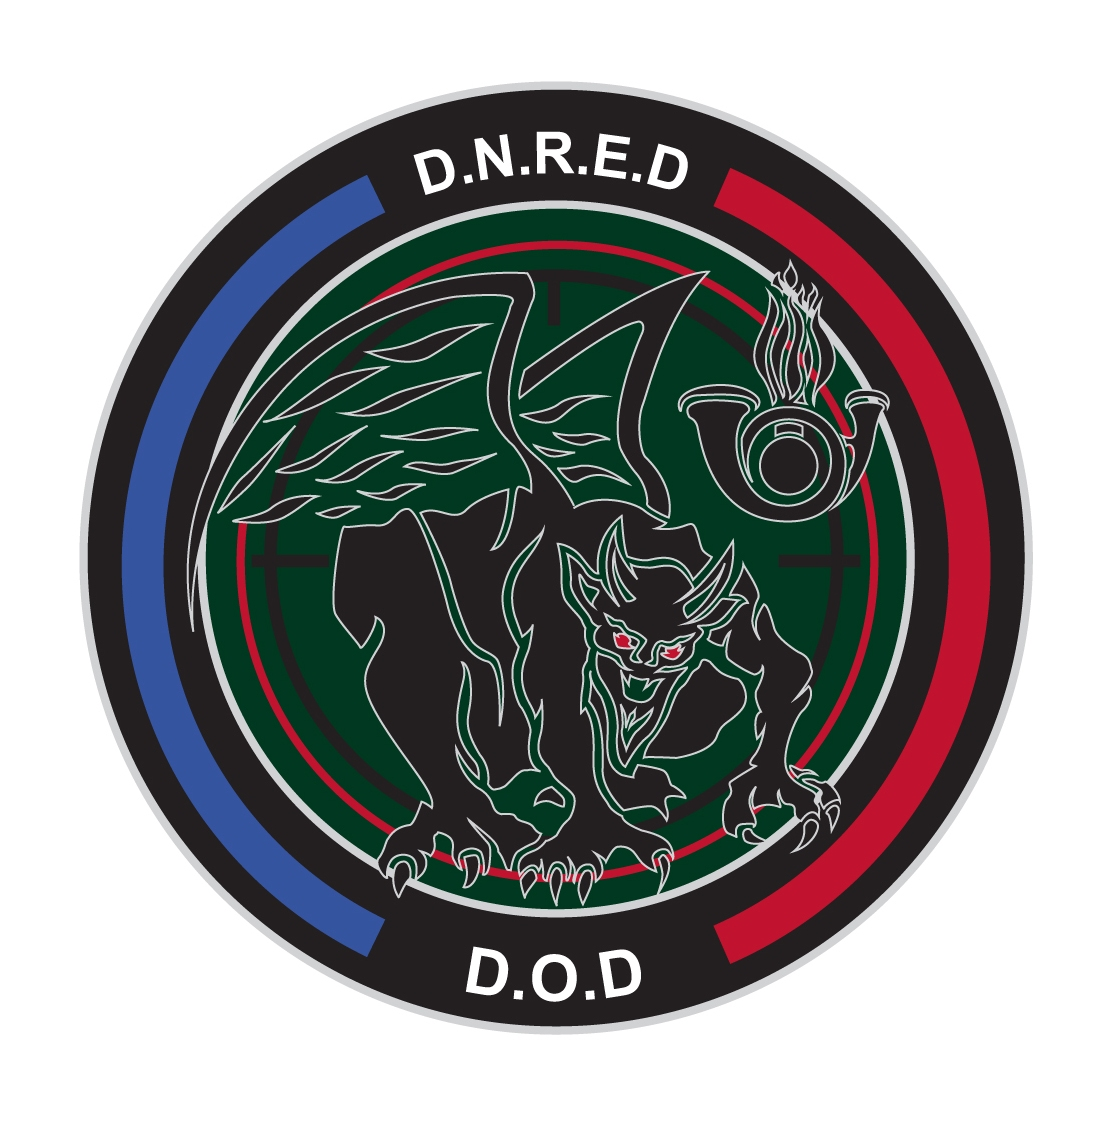 Ecusson DNRED-DOD